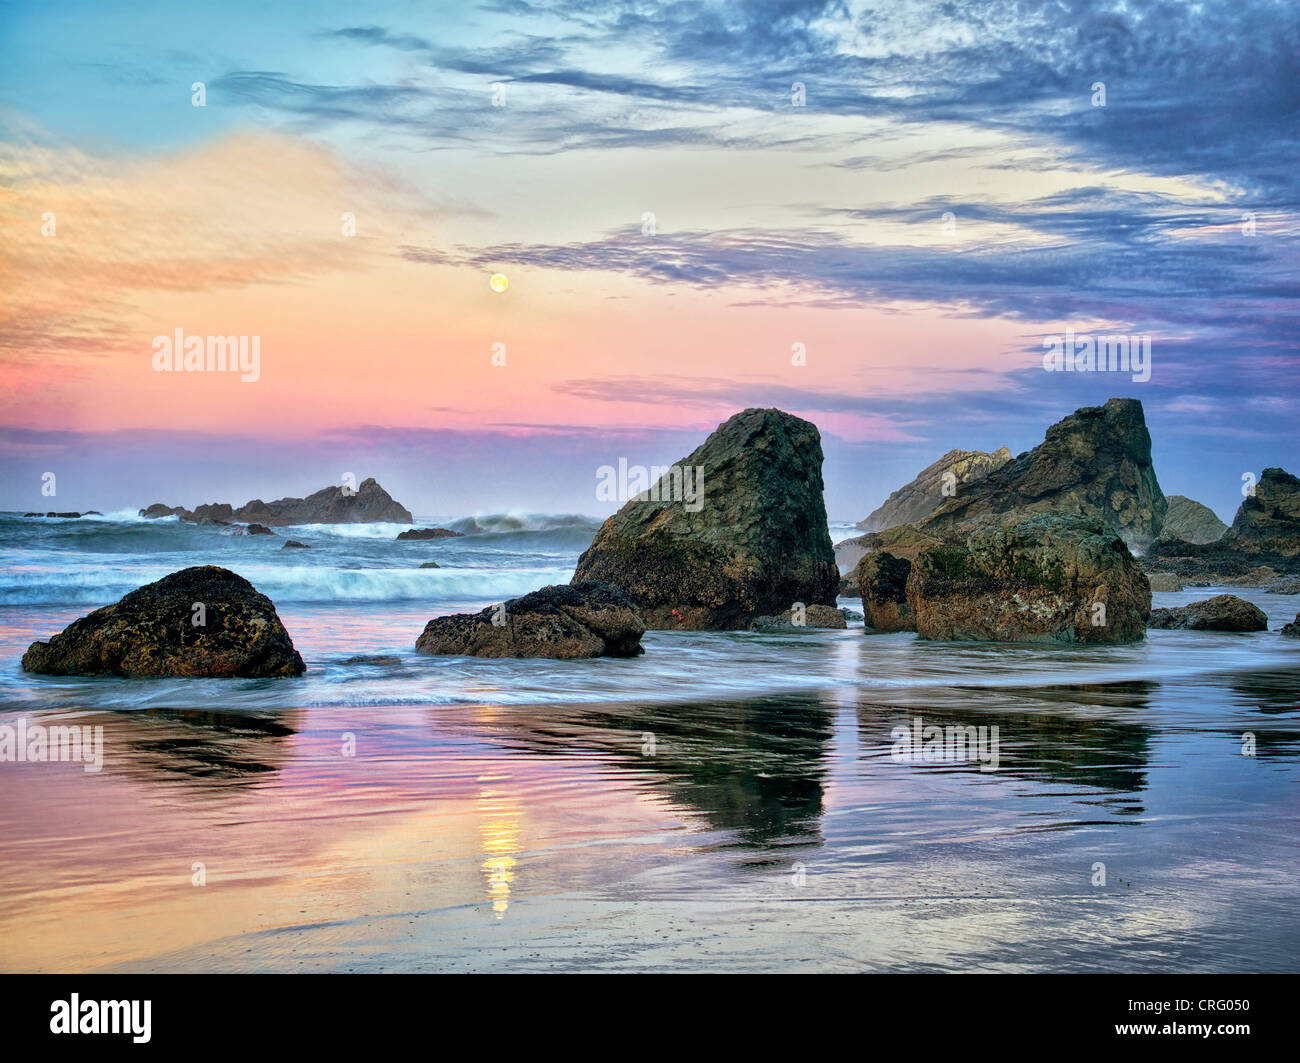 Sunrise and full moonset with reflection at Harris Beach State Park, Oregon - Stock Image